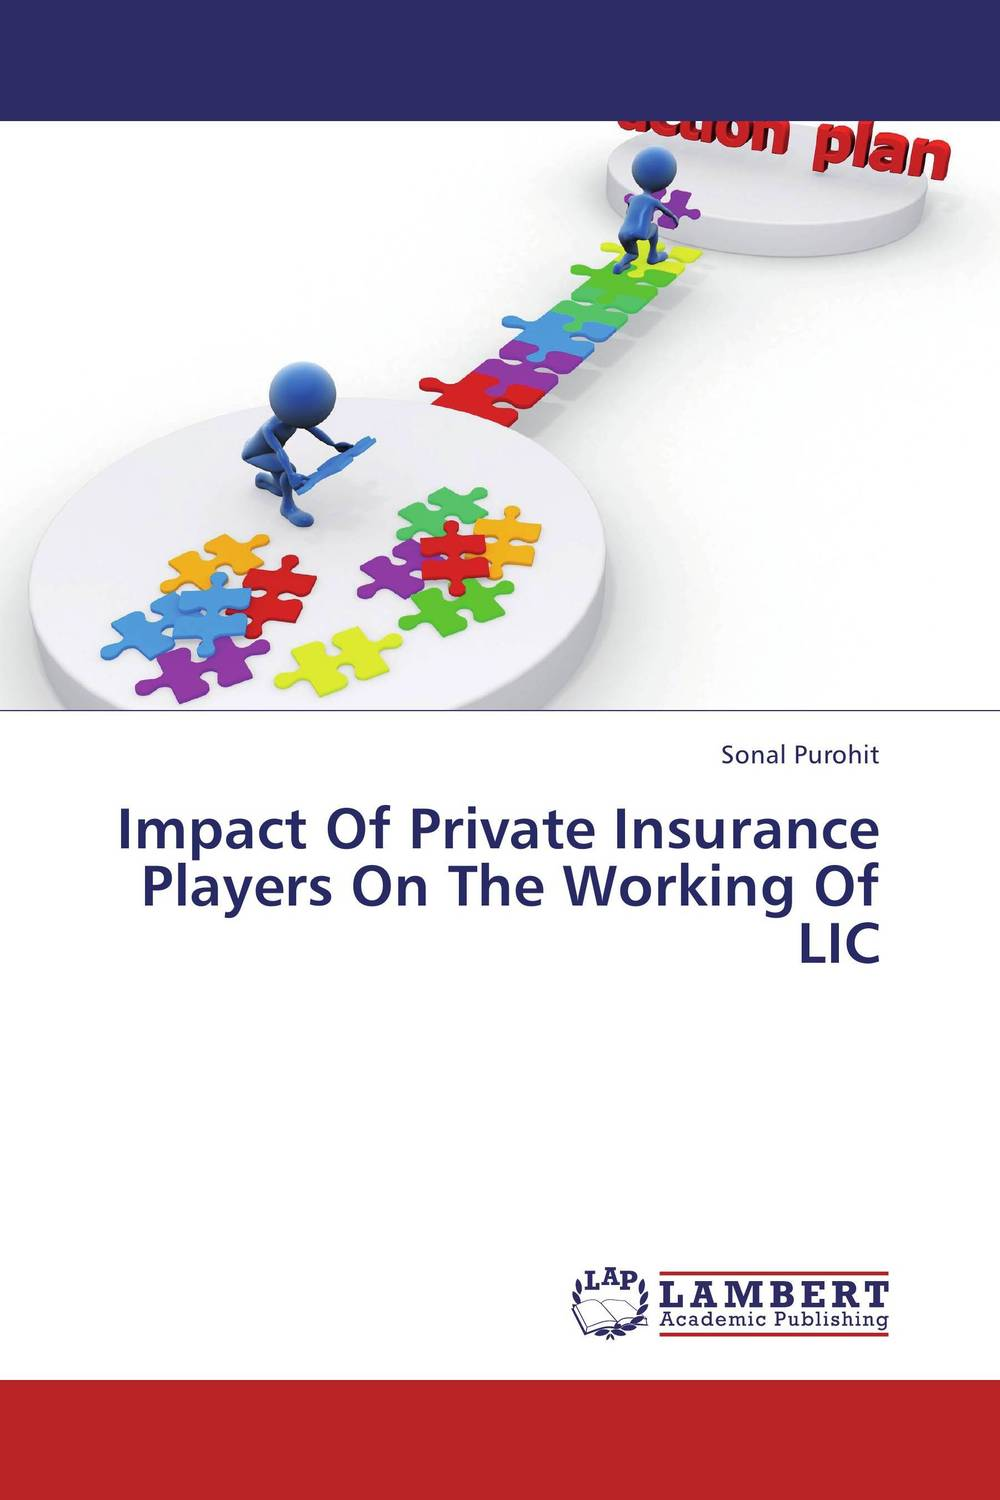 Impact Of Private Insurance Players On The Working Of LIC financial performance analysis of general insurance companies in india